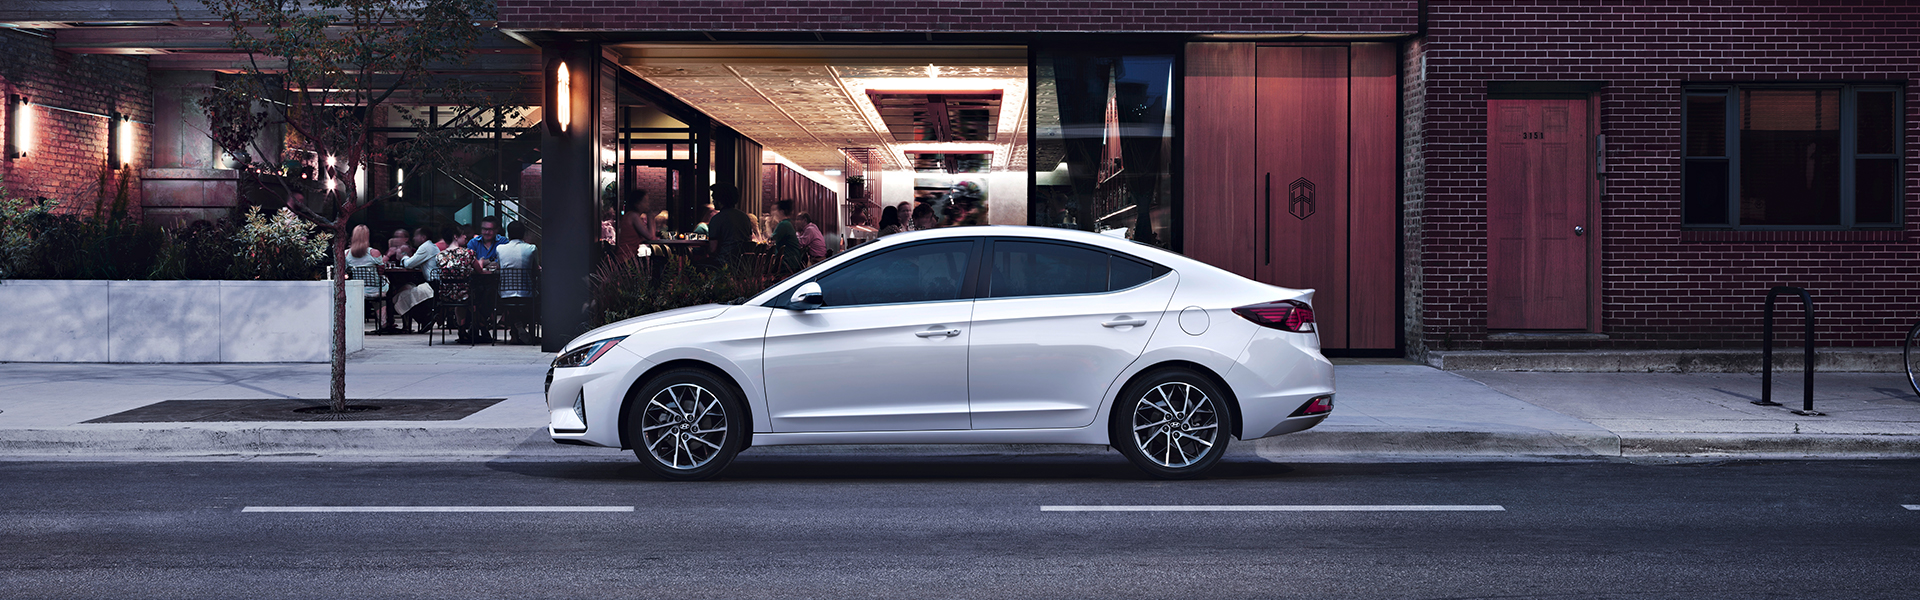 Washington Hyundai is a Hyundai Dealership in Washington near Canonsburg PA | White 2020 Elantra Street Parked in City